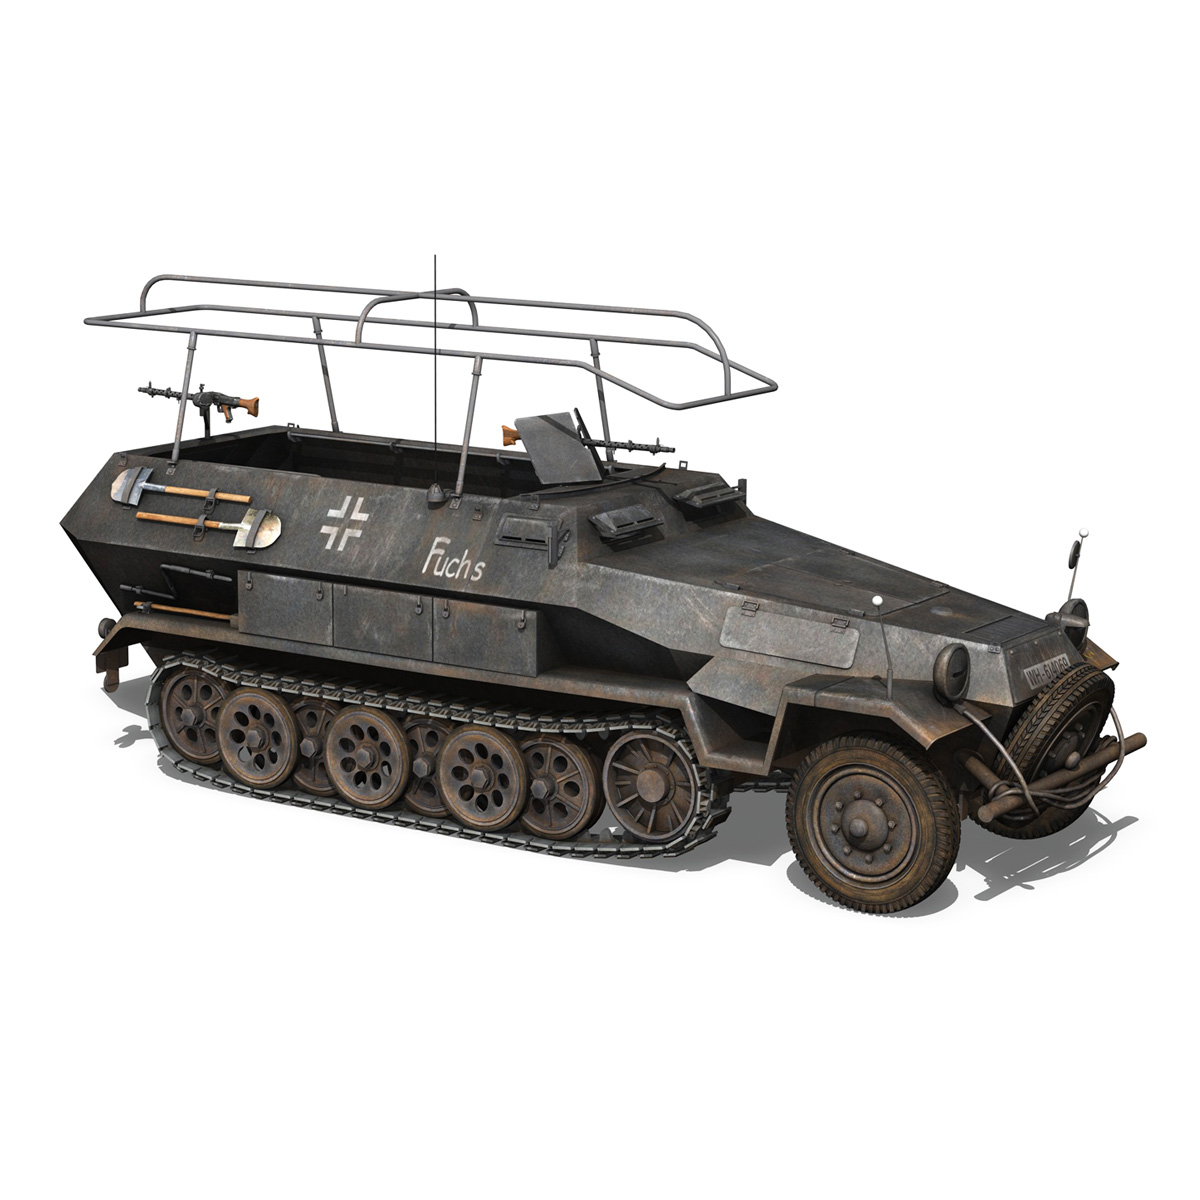 sd.kfz 251 ausf b – communications vehicle – 8pd 3d model 3ds fbx lwo lw lws obj c4d 292031